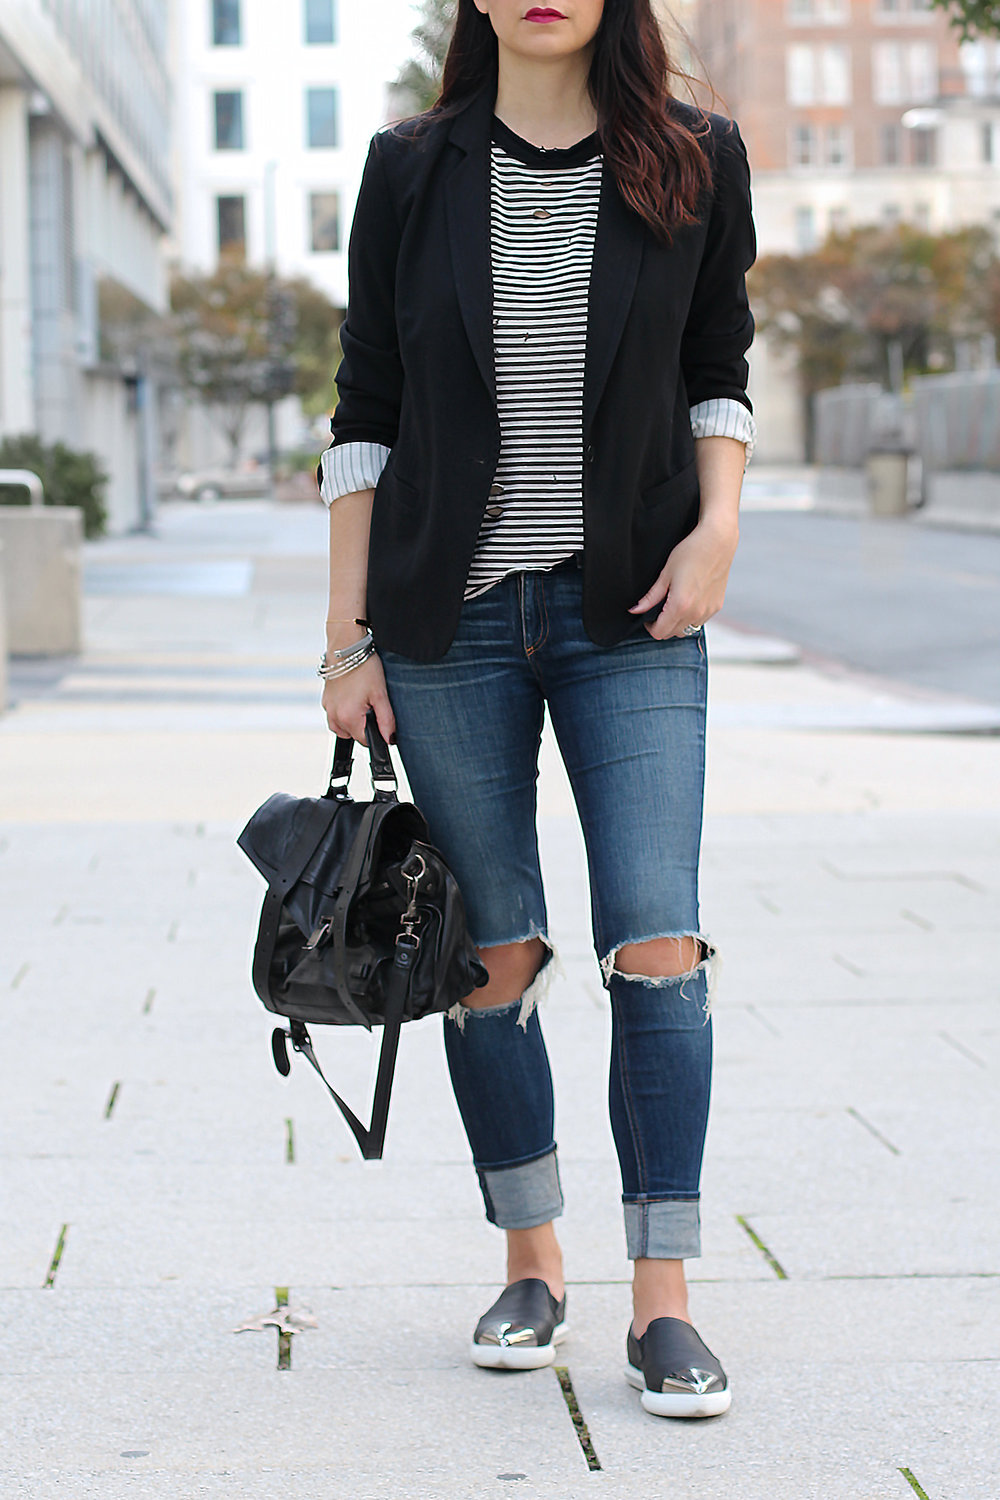 Styling a Boyfriend Blazer for the Weekend